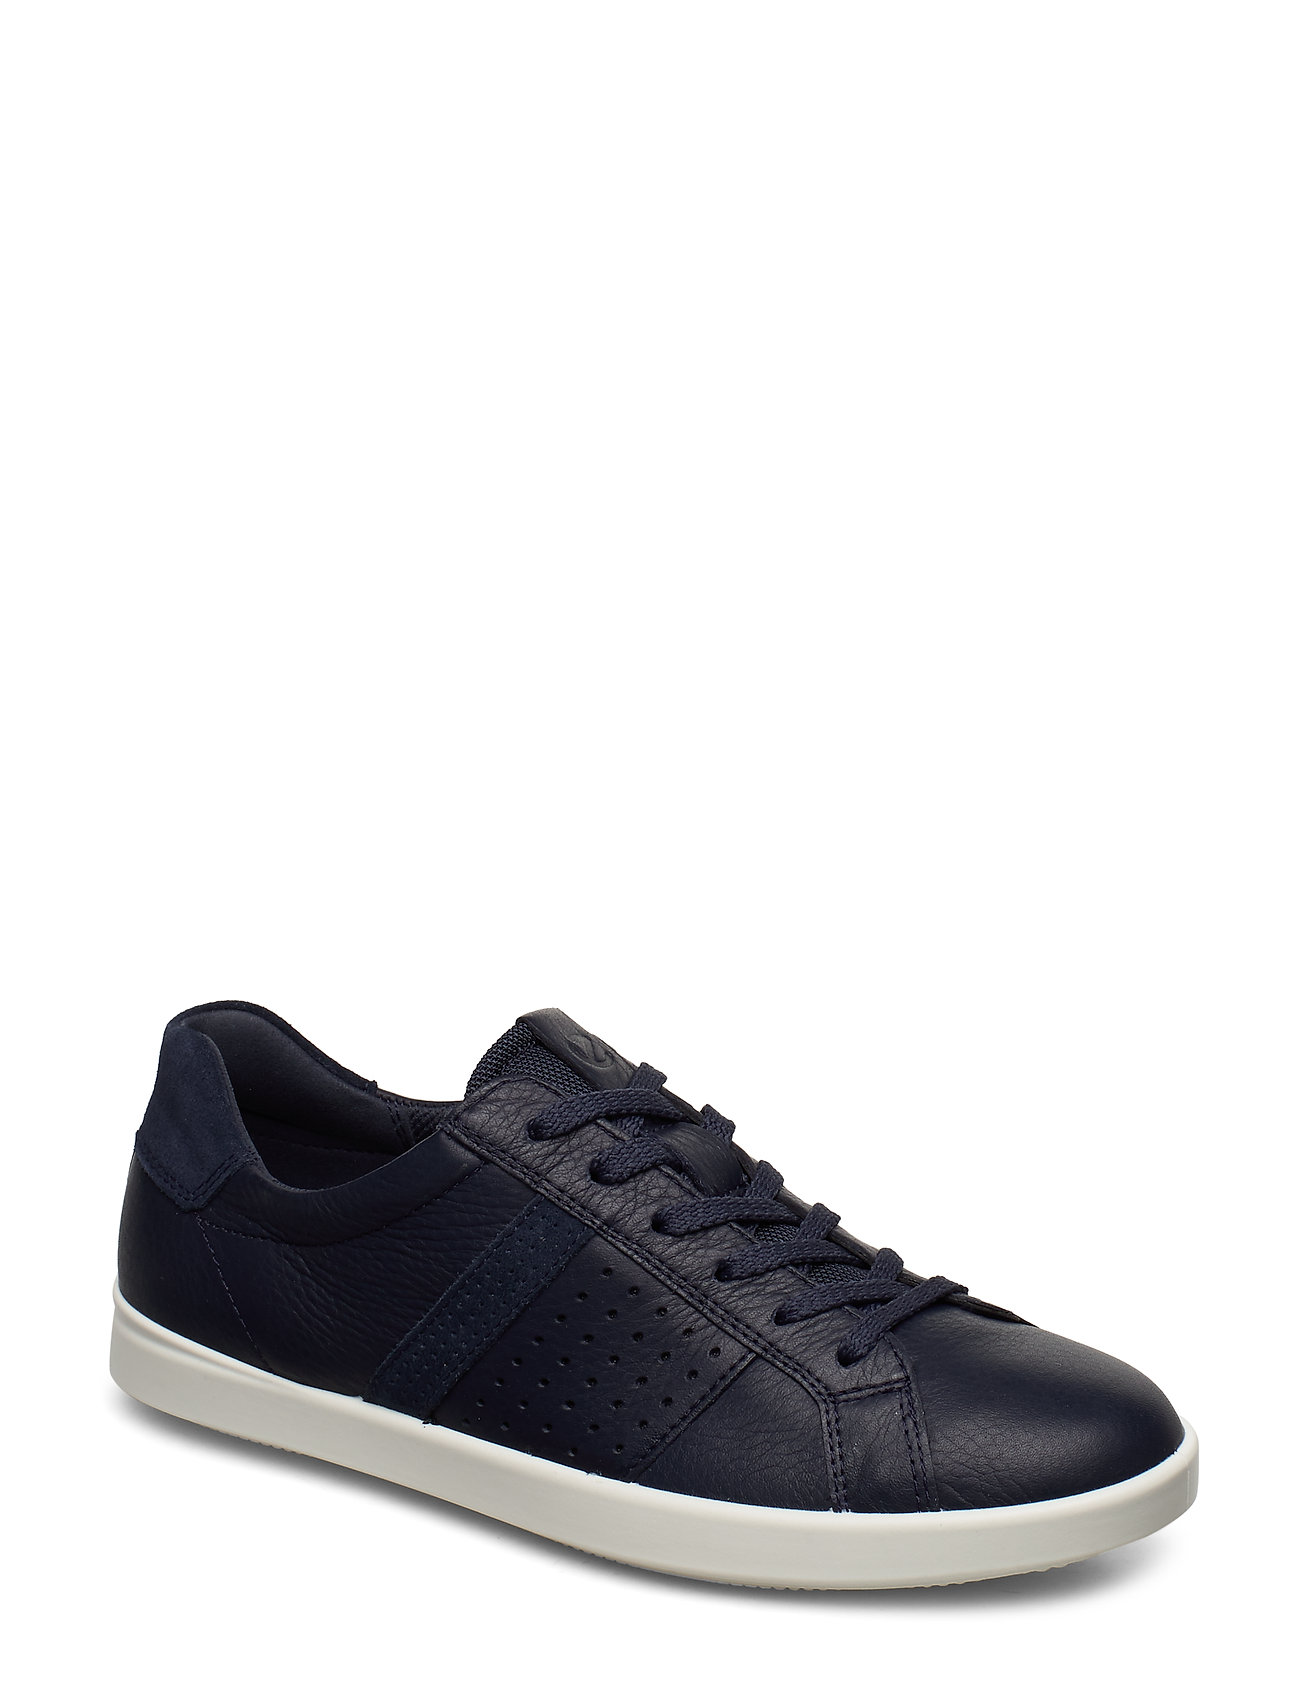 Image of Leisure Low-top Sneakers Blå ECCO (3484677825)